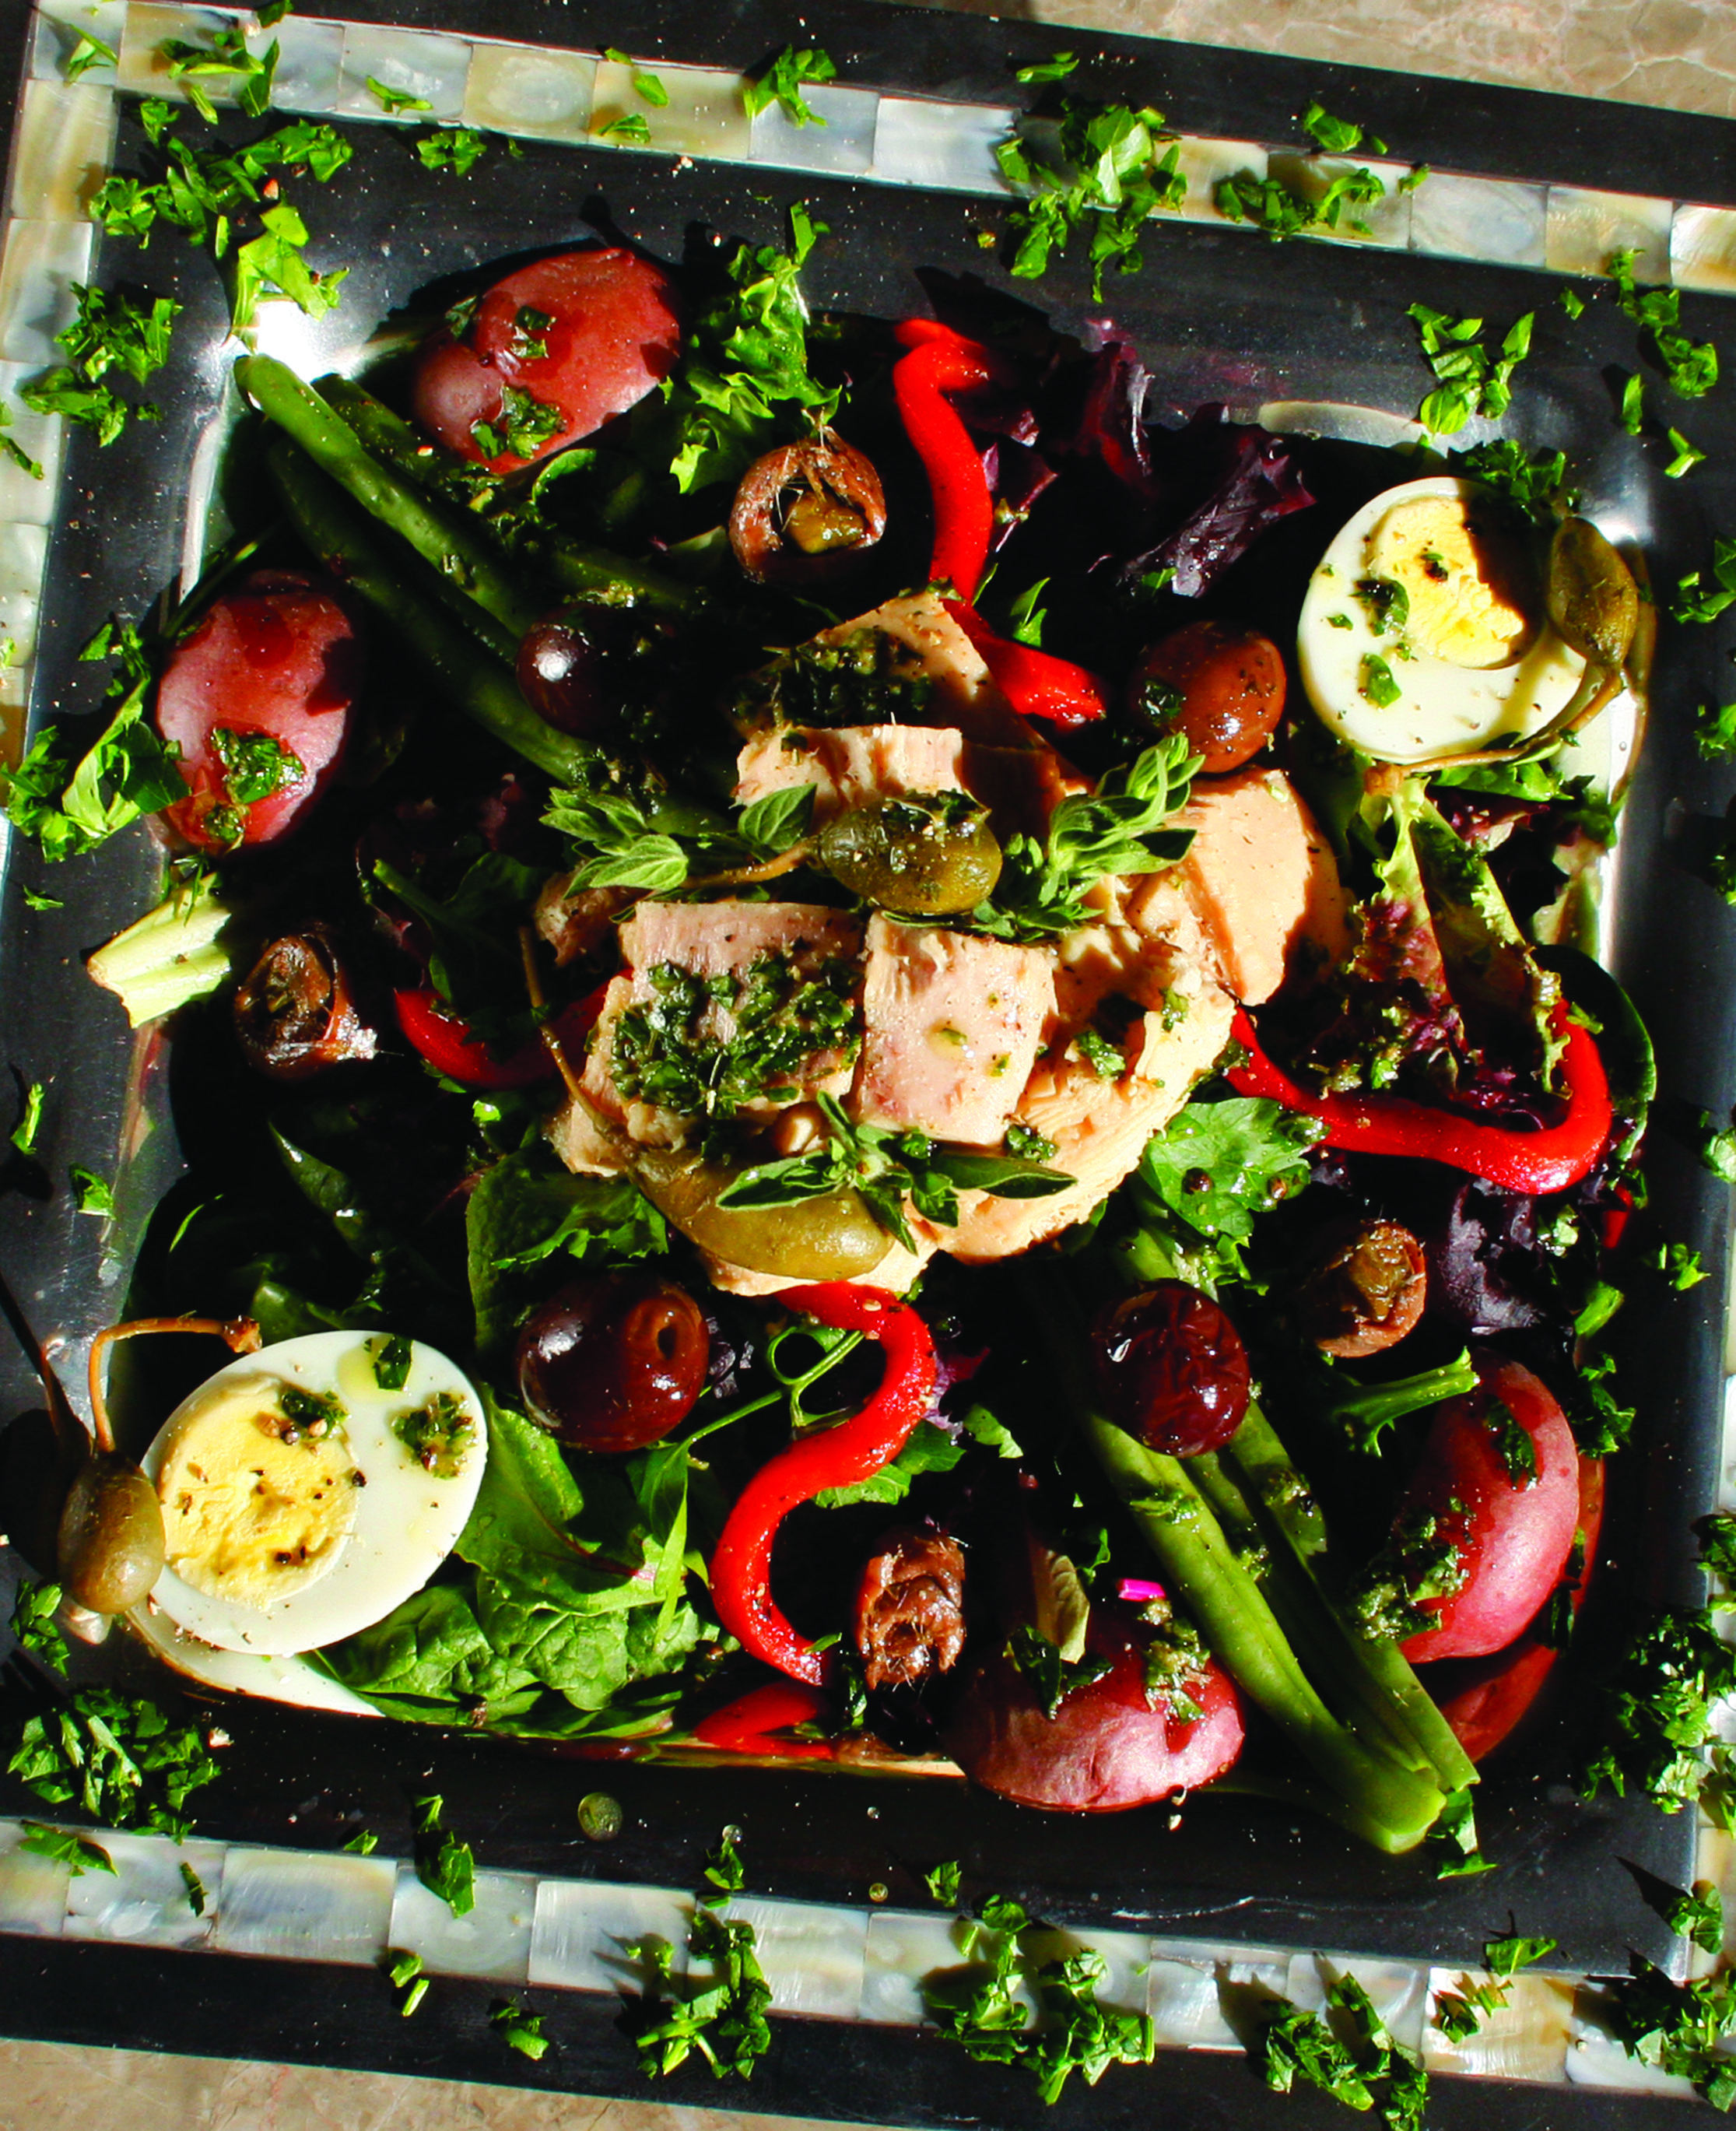 Nicoise Salad - A variety of vegetables topped with tuna and hard boiled eggs. A great meal for any day of the week!